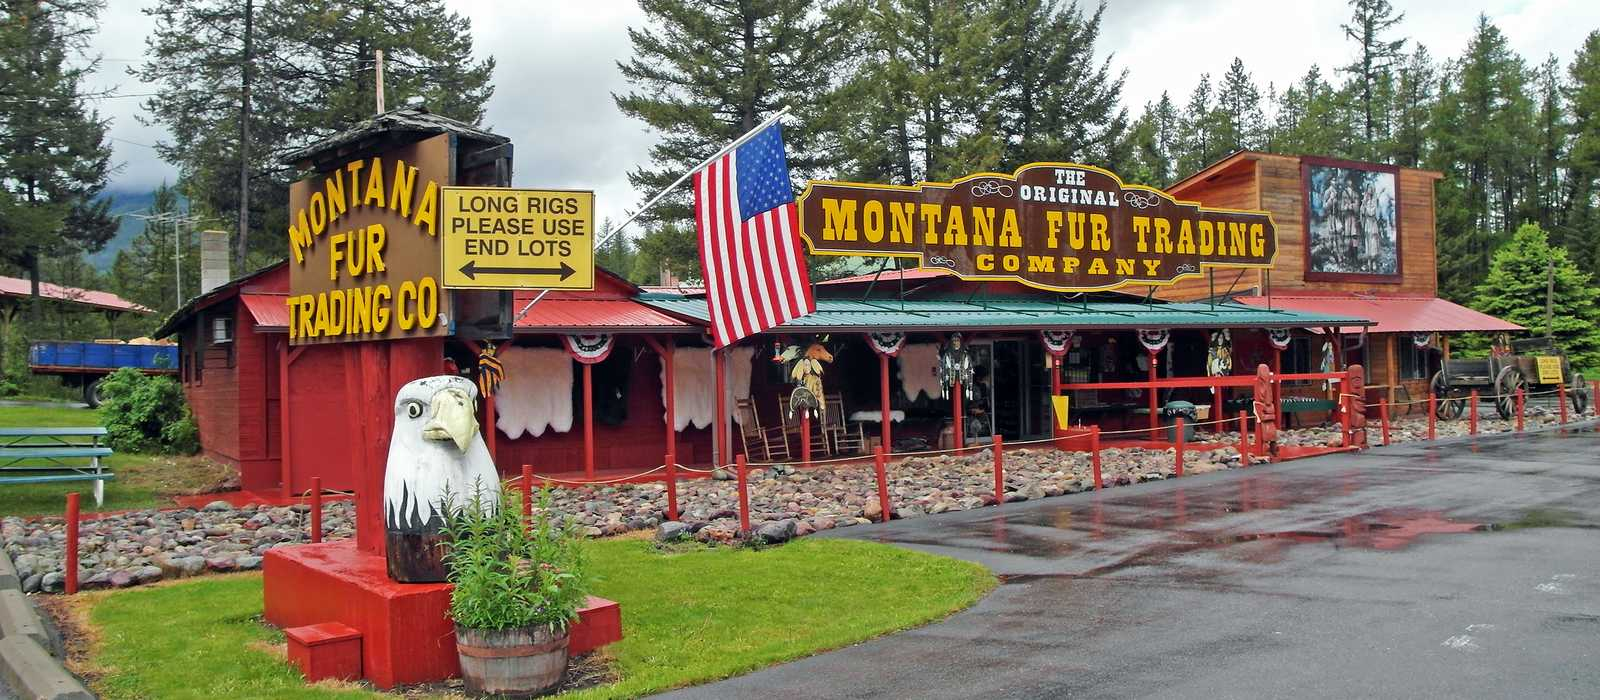 The Original Montana Fur Trading Company